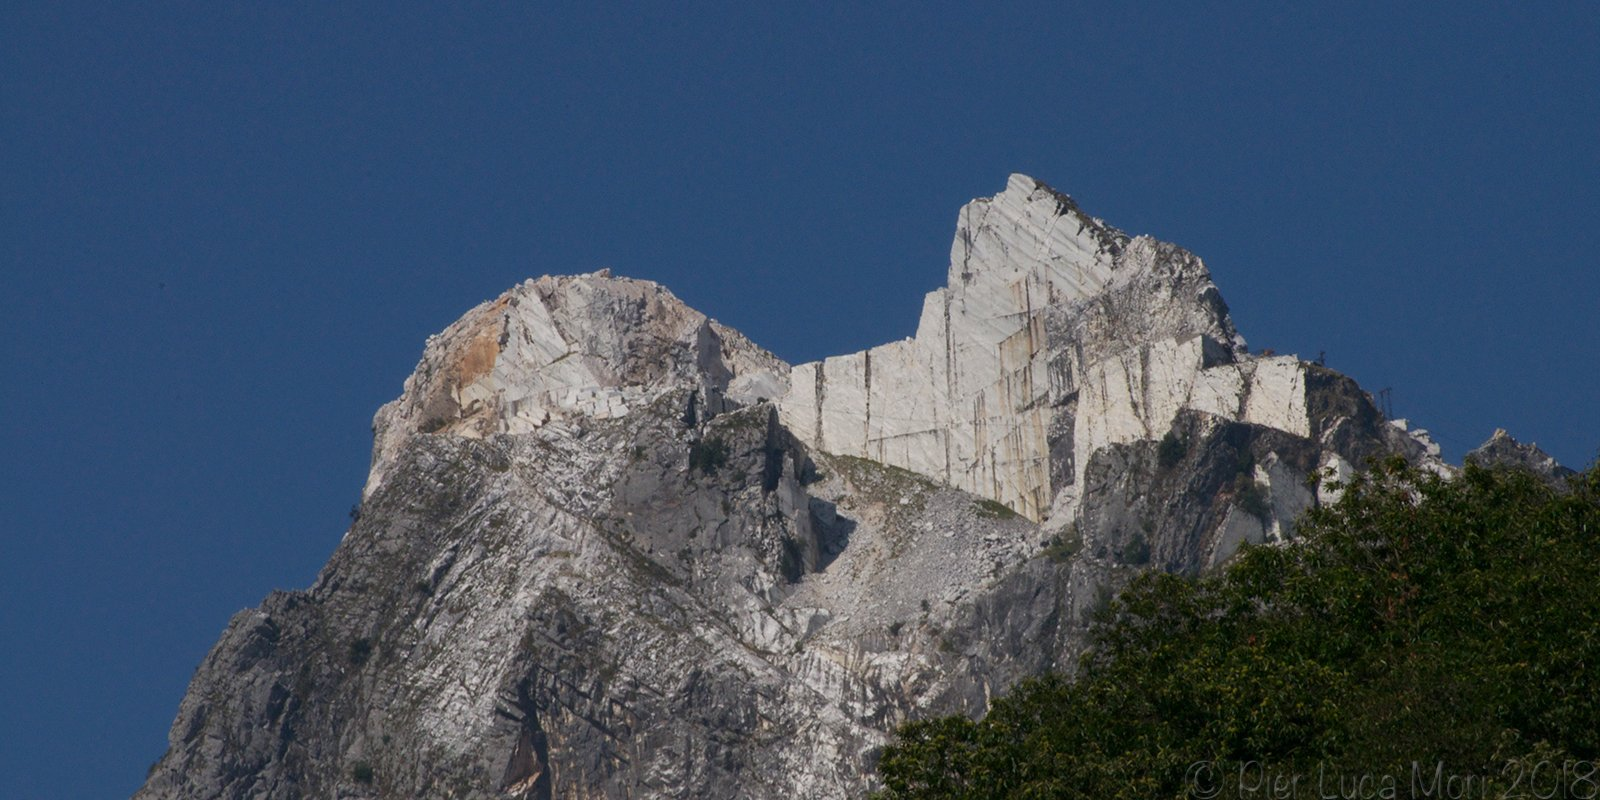 The Marble quarries on the Apuan Alps